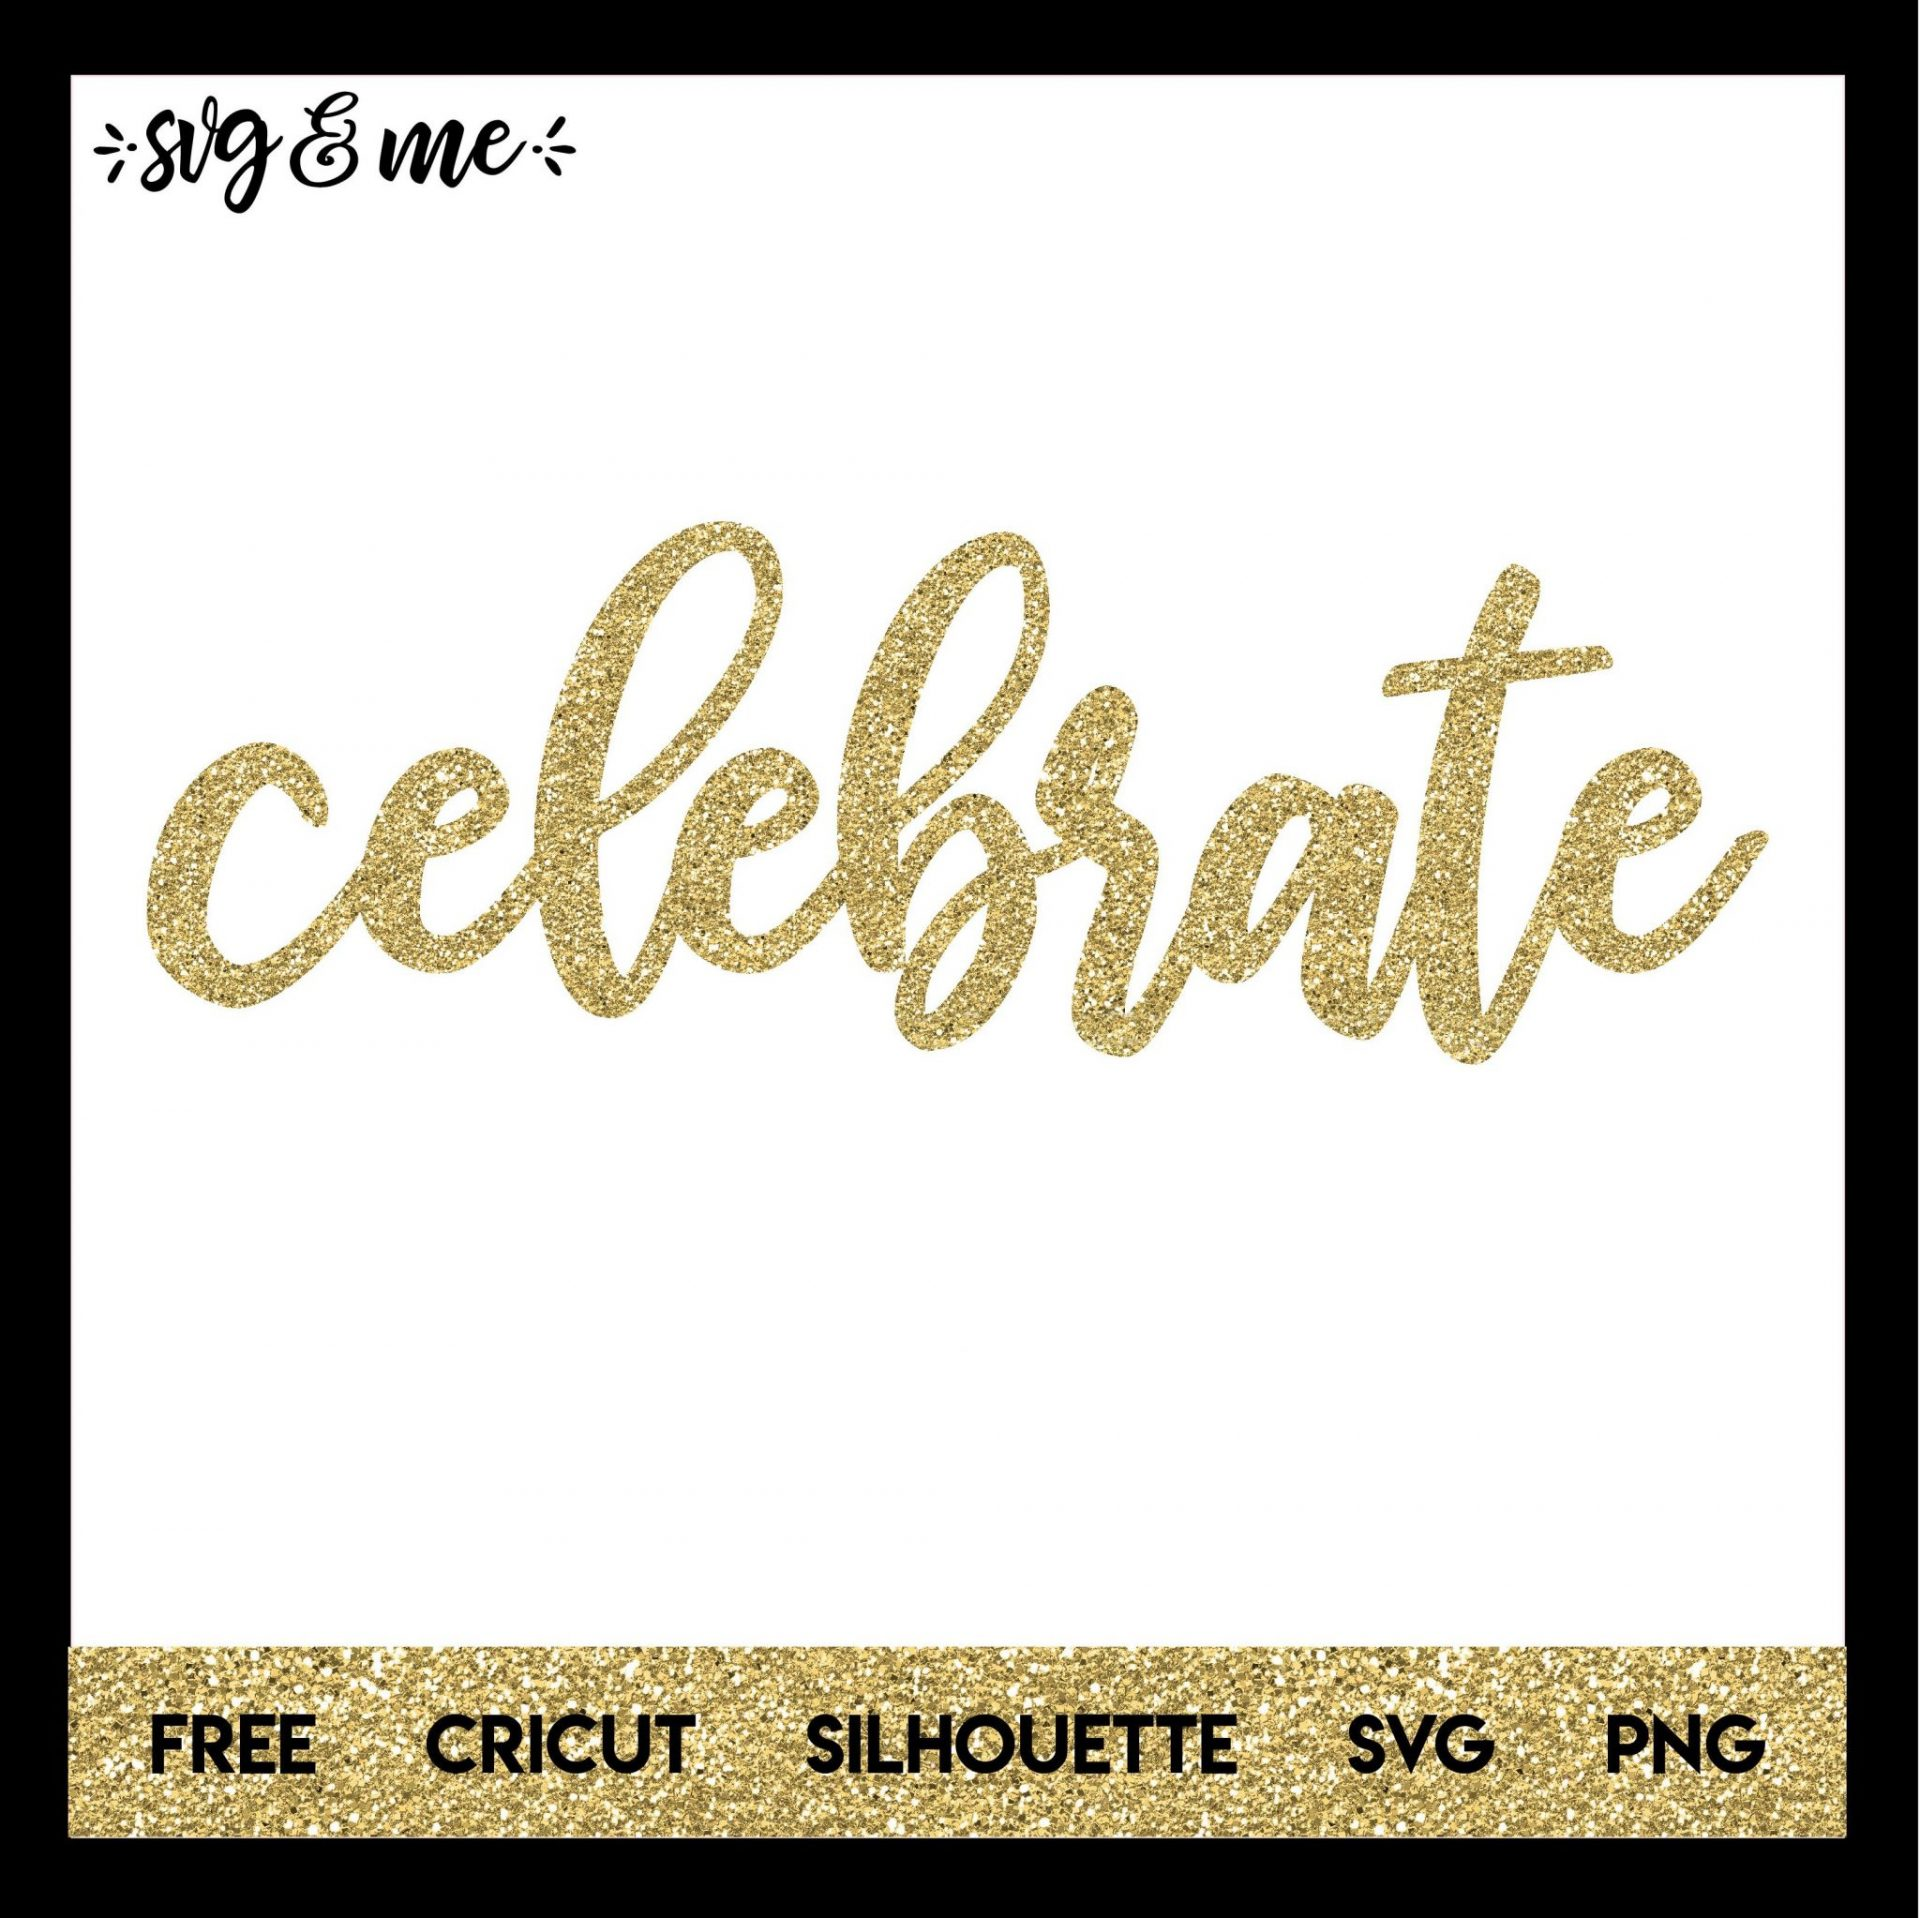 FREE SVG CUT FILE for Cricut, Silhouette and more - Happy Birthday Cake Topper SVG